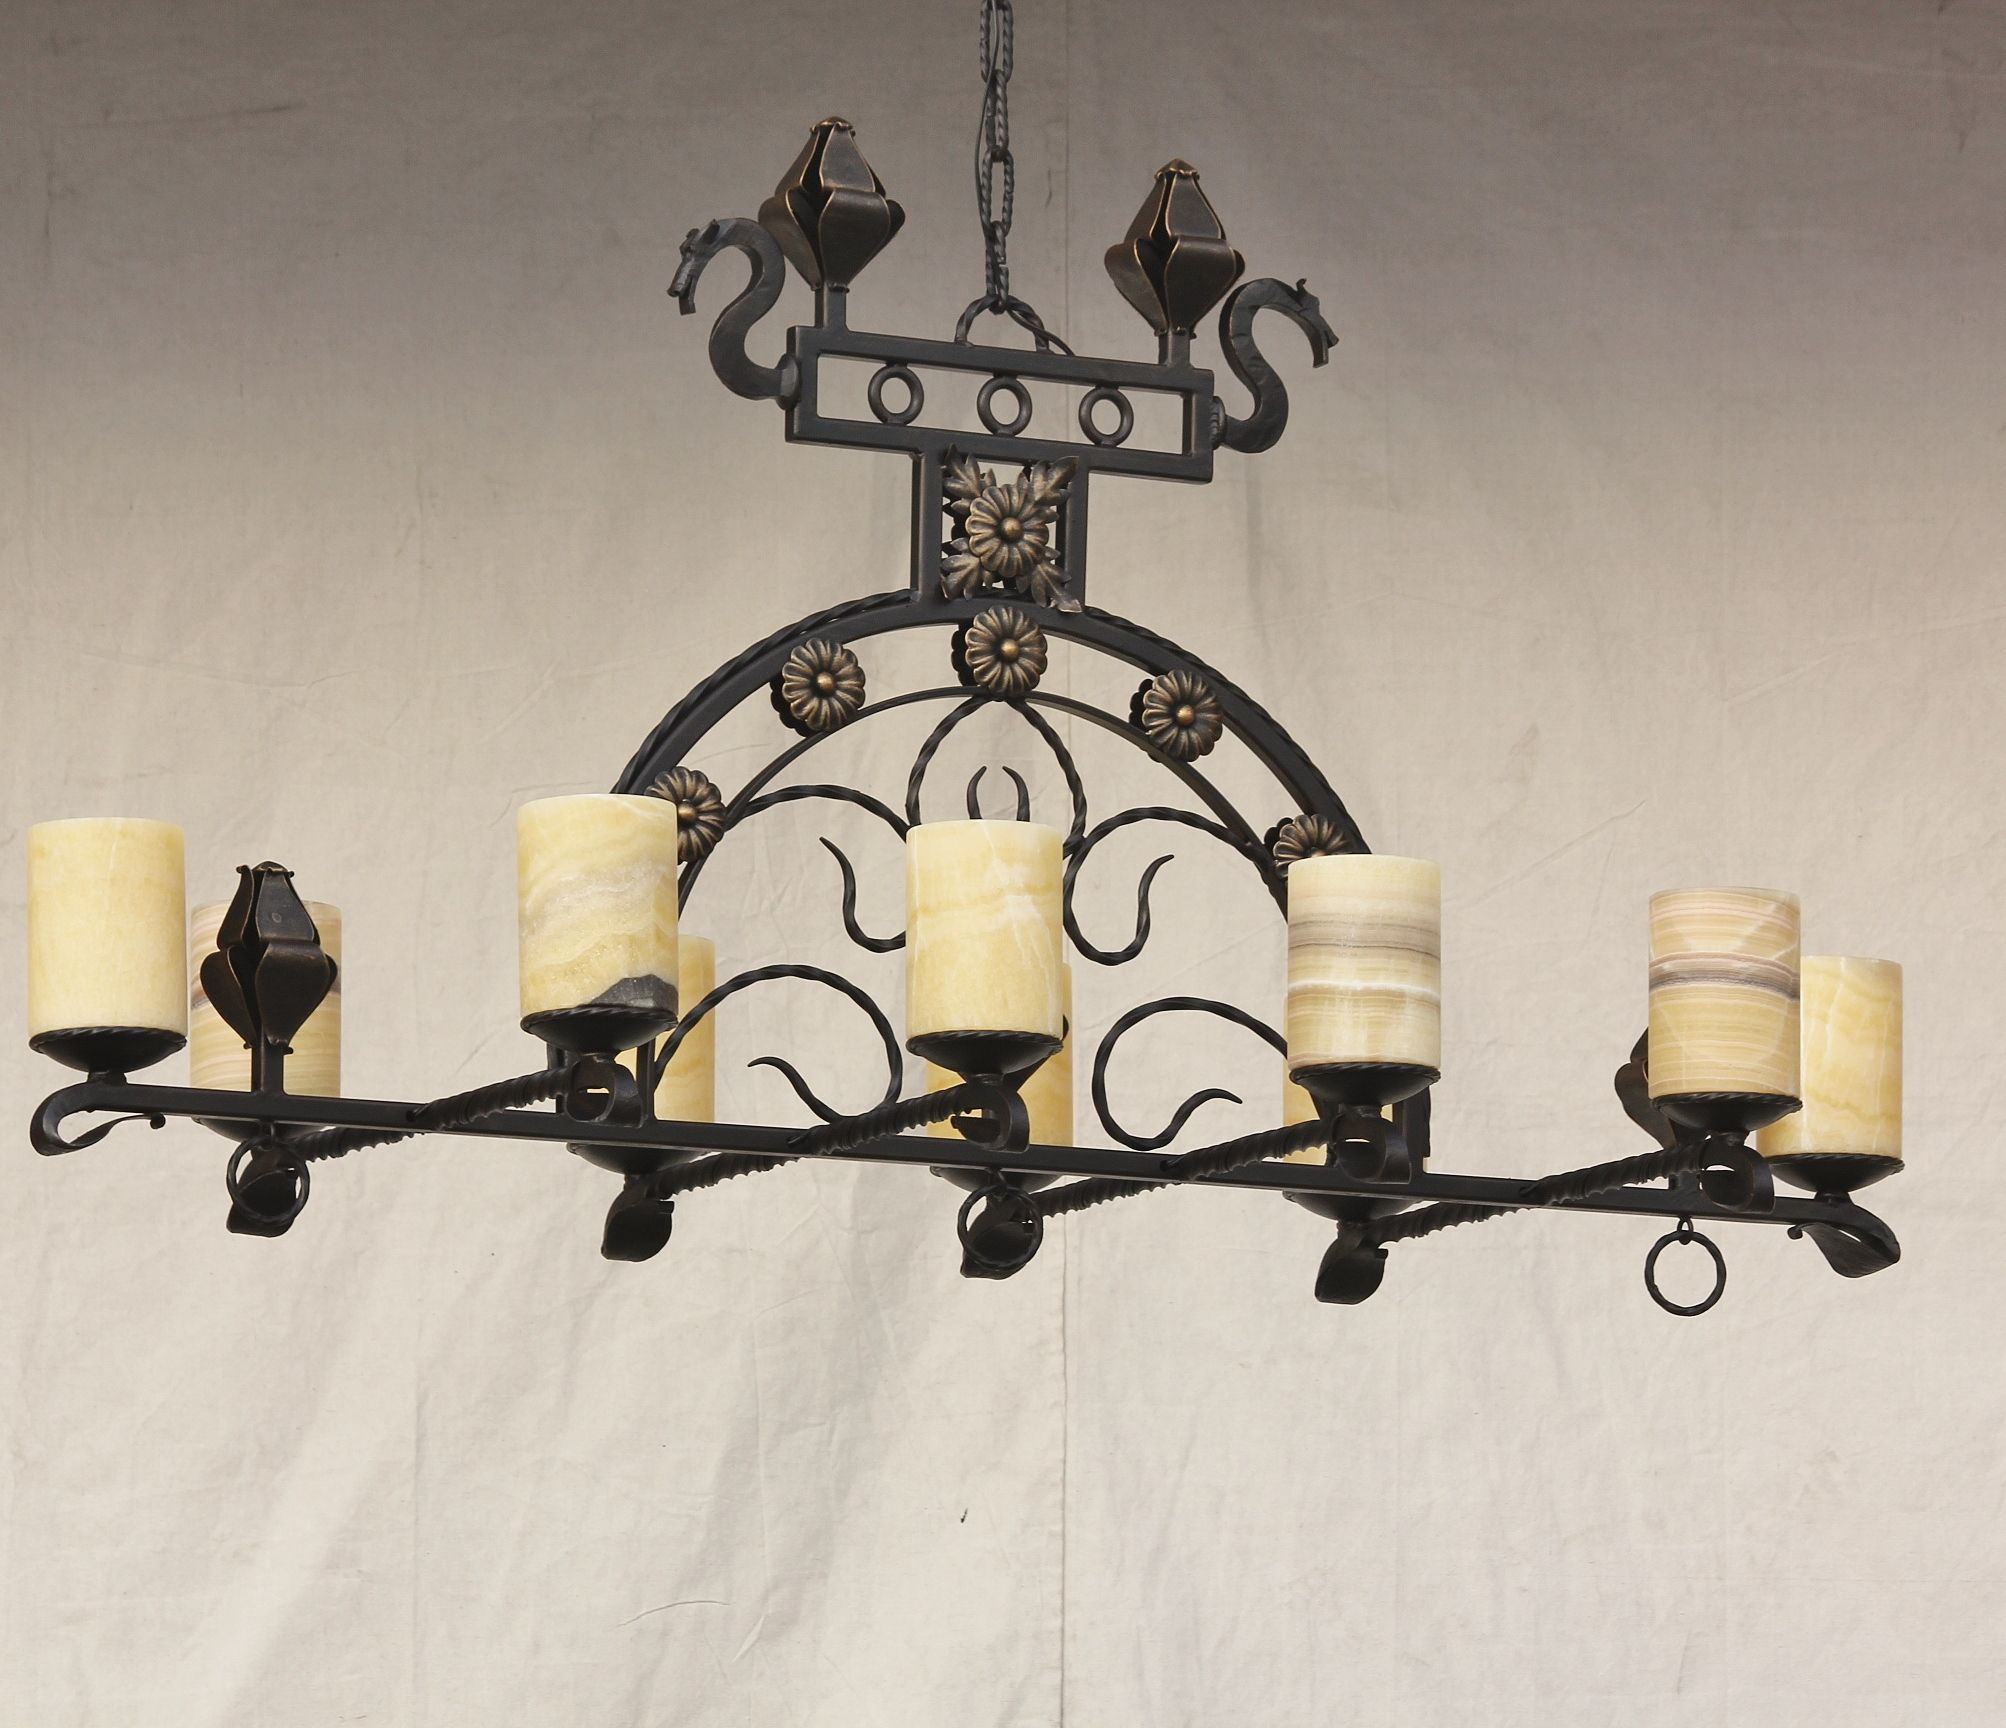 Lights Of Tuscany 1559 10 Spanish Style Wrought Iron Chandelier With Real Onyx Stone Shades